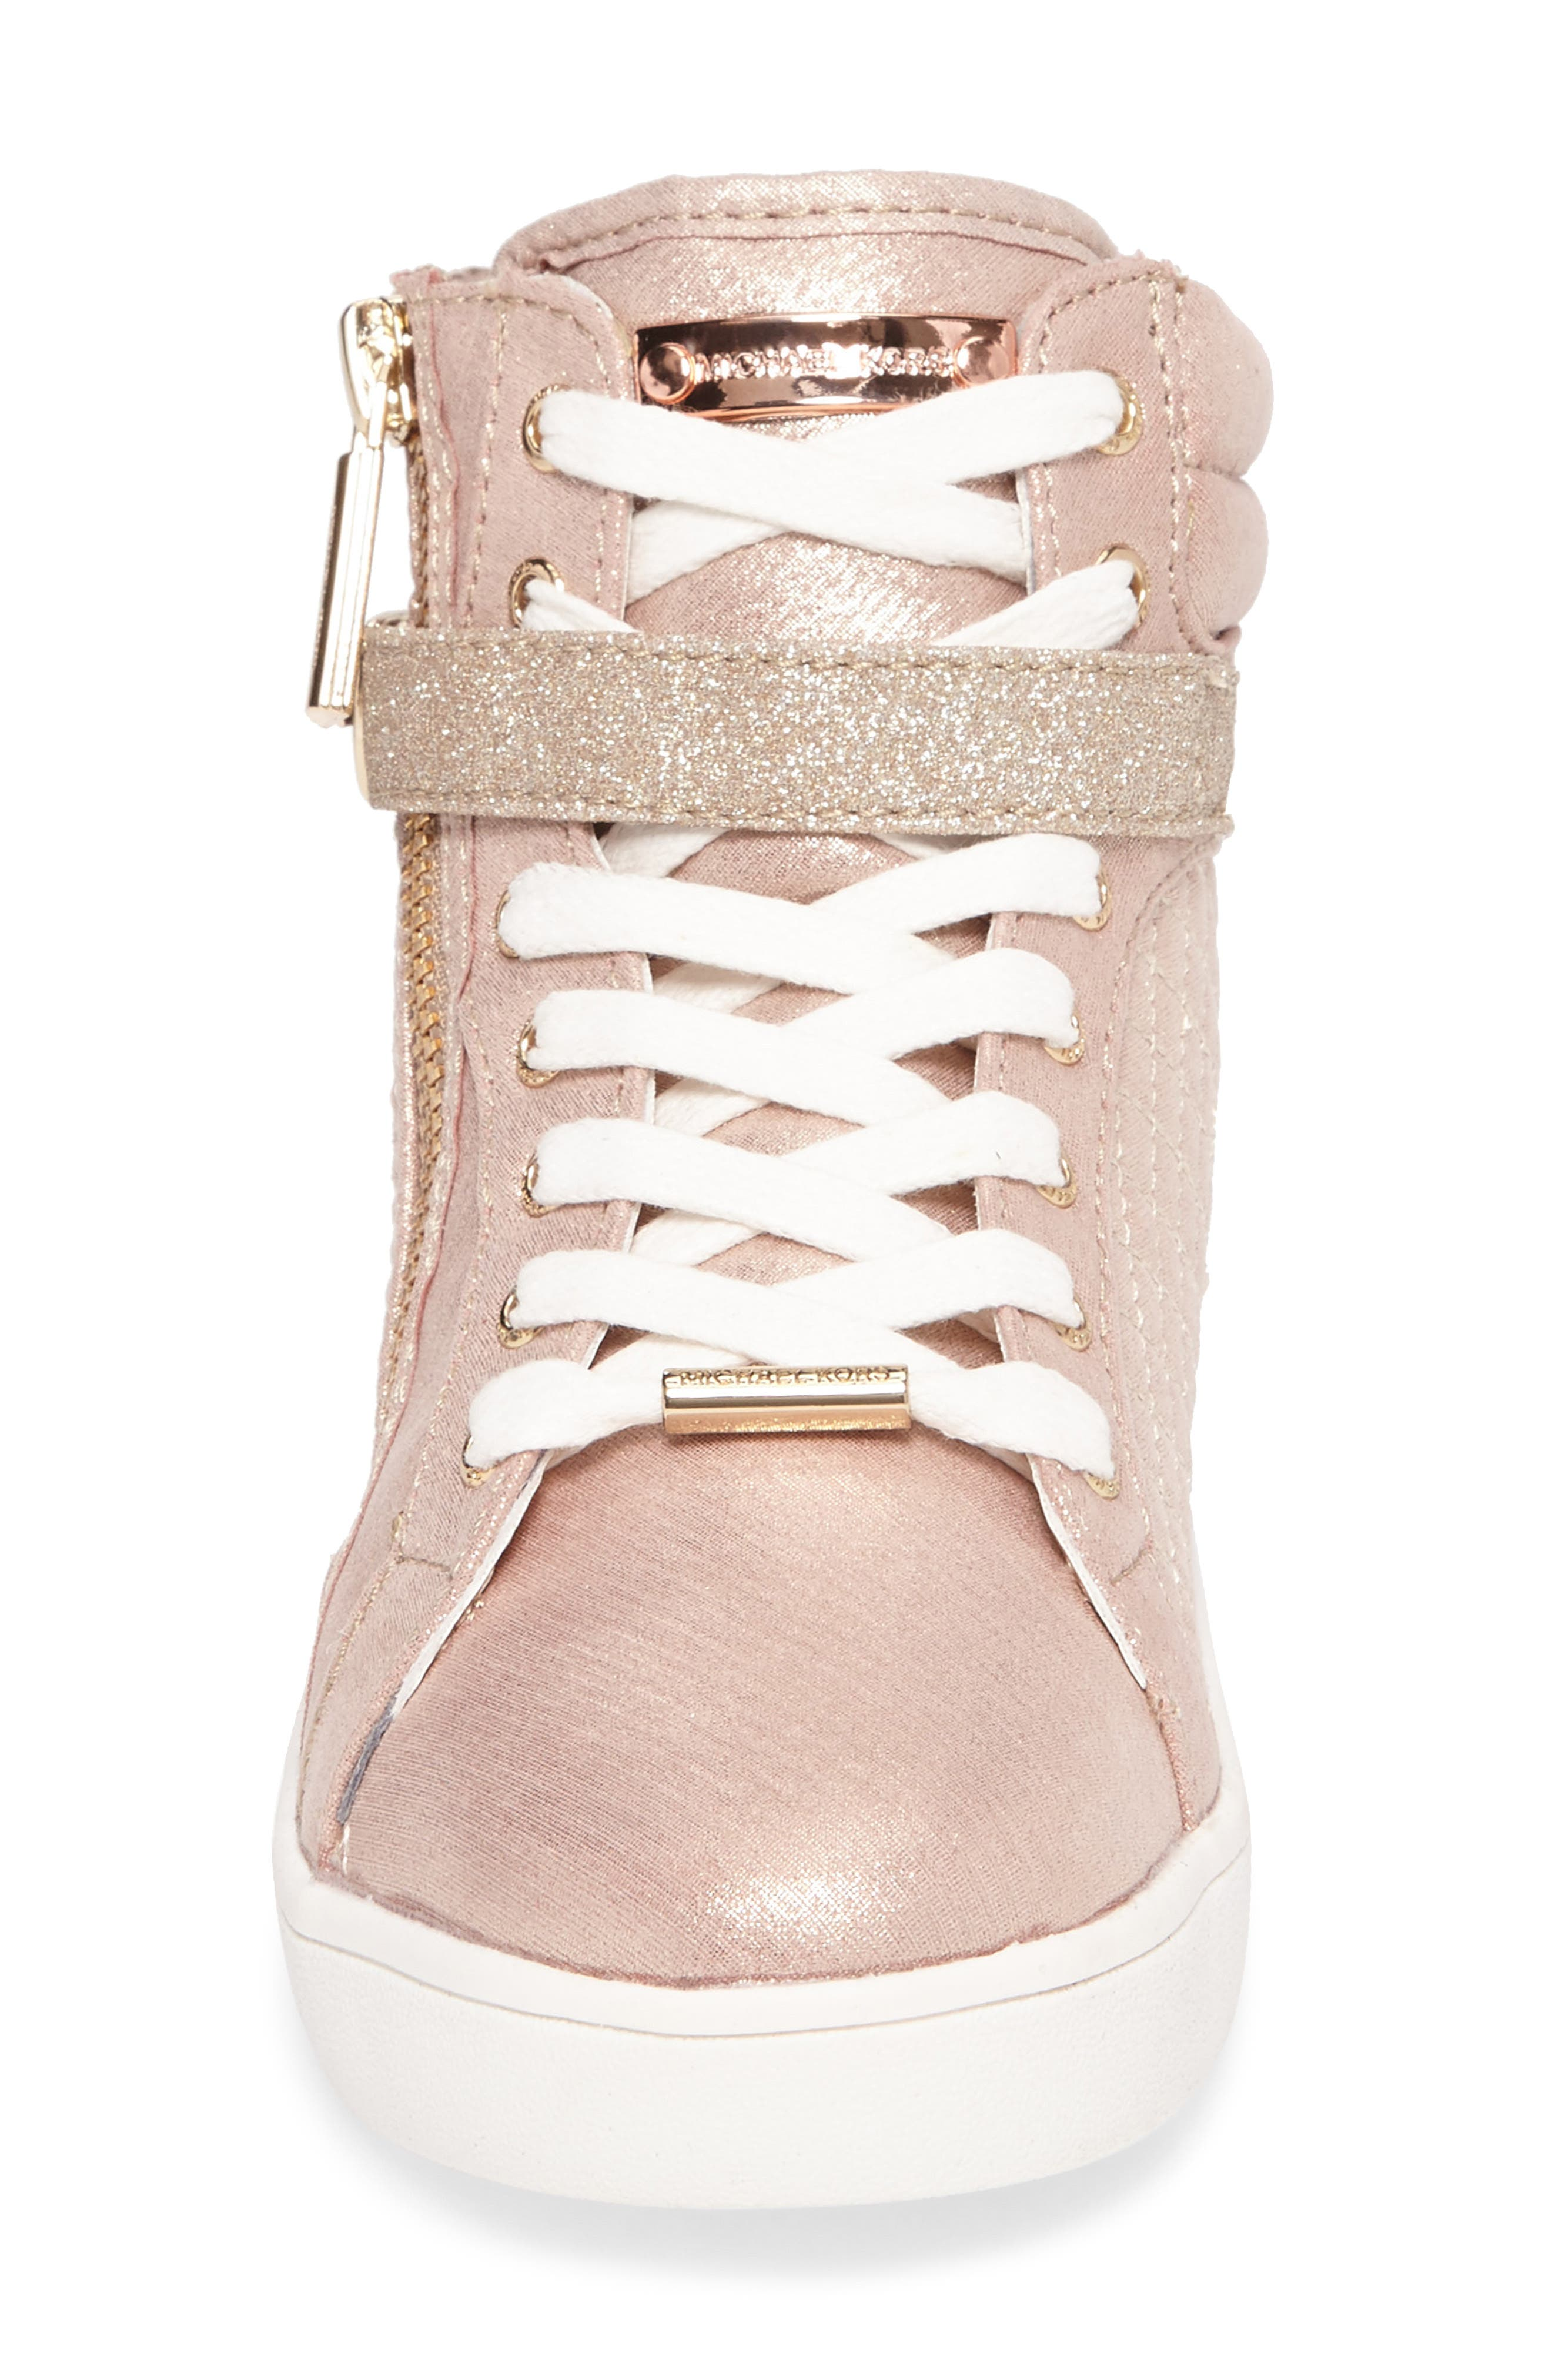 Ivy Rio Glittery High Top Sneaker,                             Alternate thumbnail 4, color,                             Rose Gold